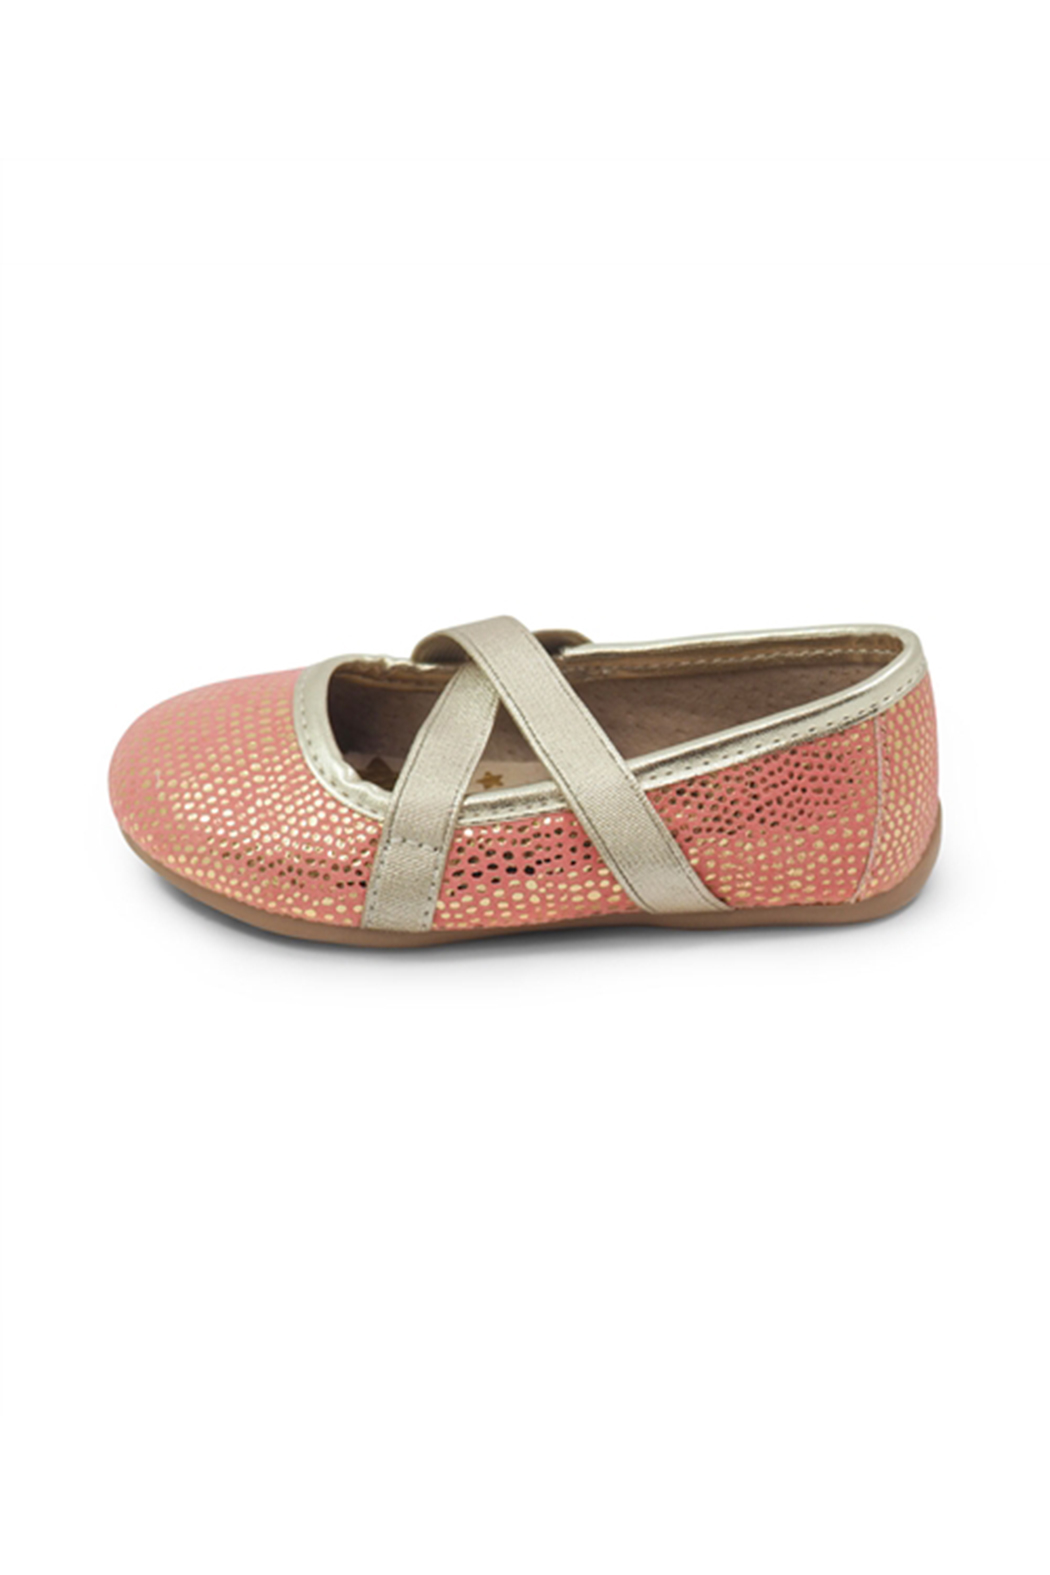 Livie & Luca Aurora Ballet Flat Youth - Front Full Image